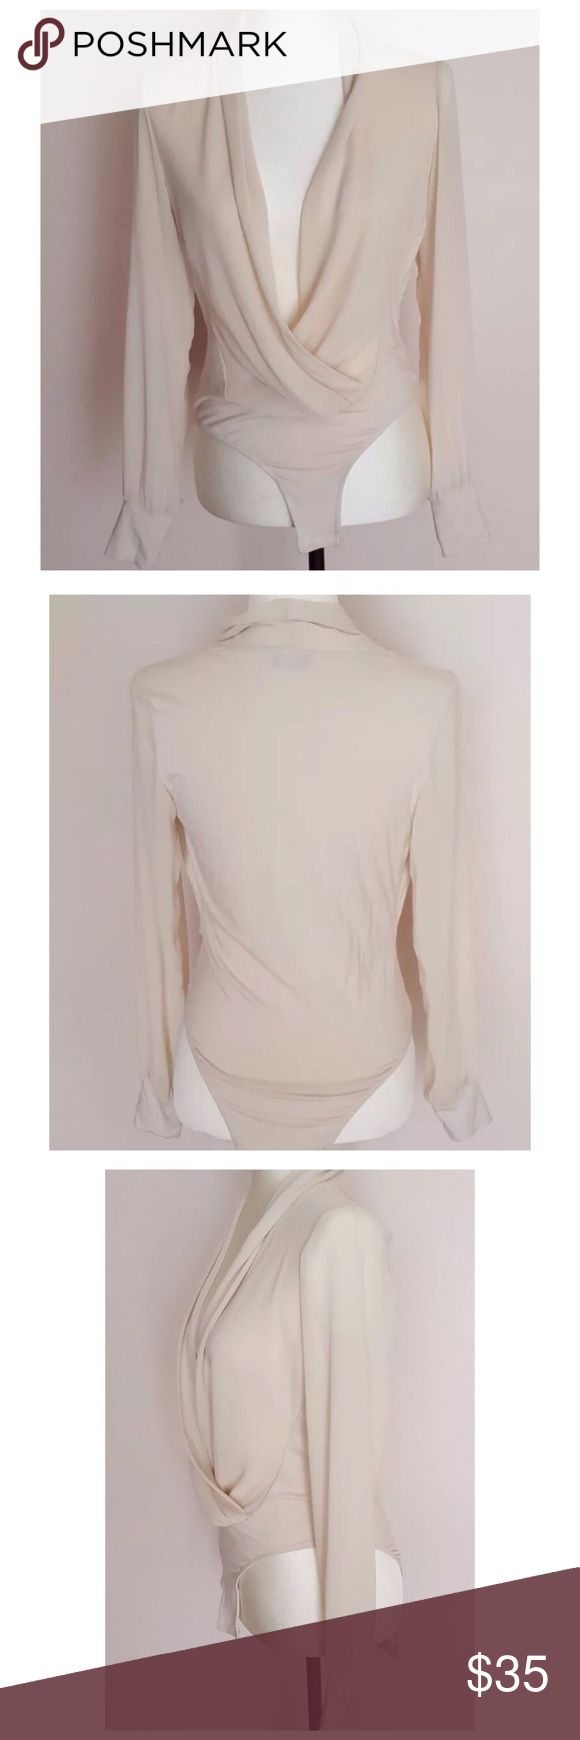 Bardot Cream Blouse / Bodysuit Size: Aus: 10, US: small (4-6)  Beige long sleeved leotard blouse.  It has a hole repair near the care tag. This area is tucked in, so it's not noticeable. Also, marked a size 6, but I would say closer to a 4. This is reflected in the price. Bardot Tops Blouses